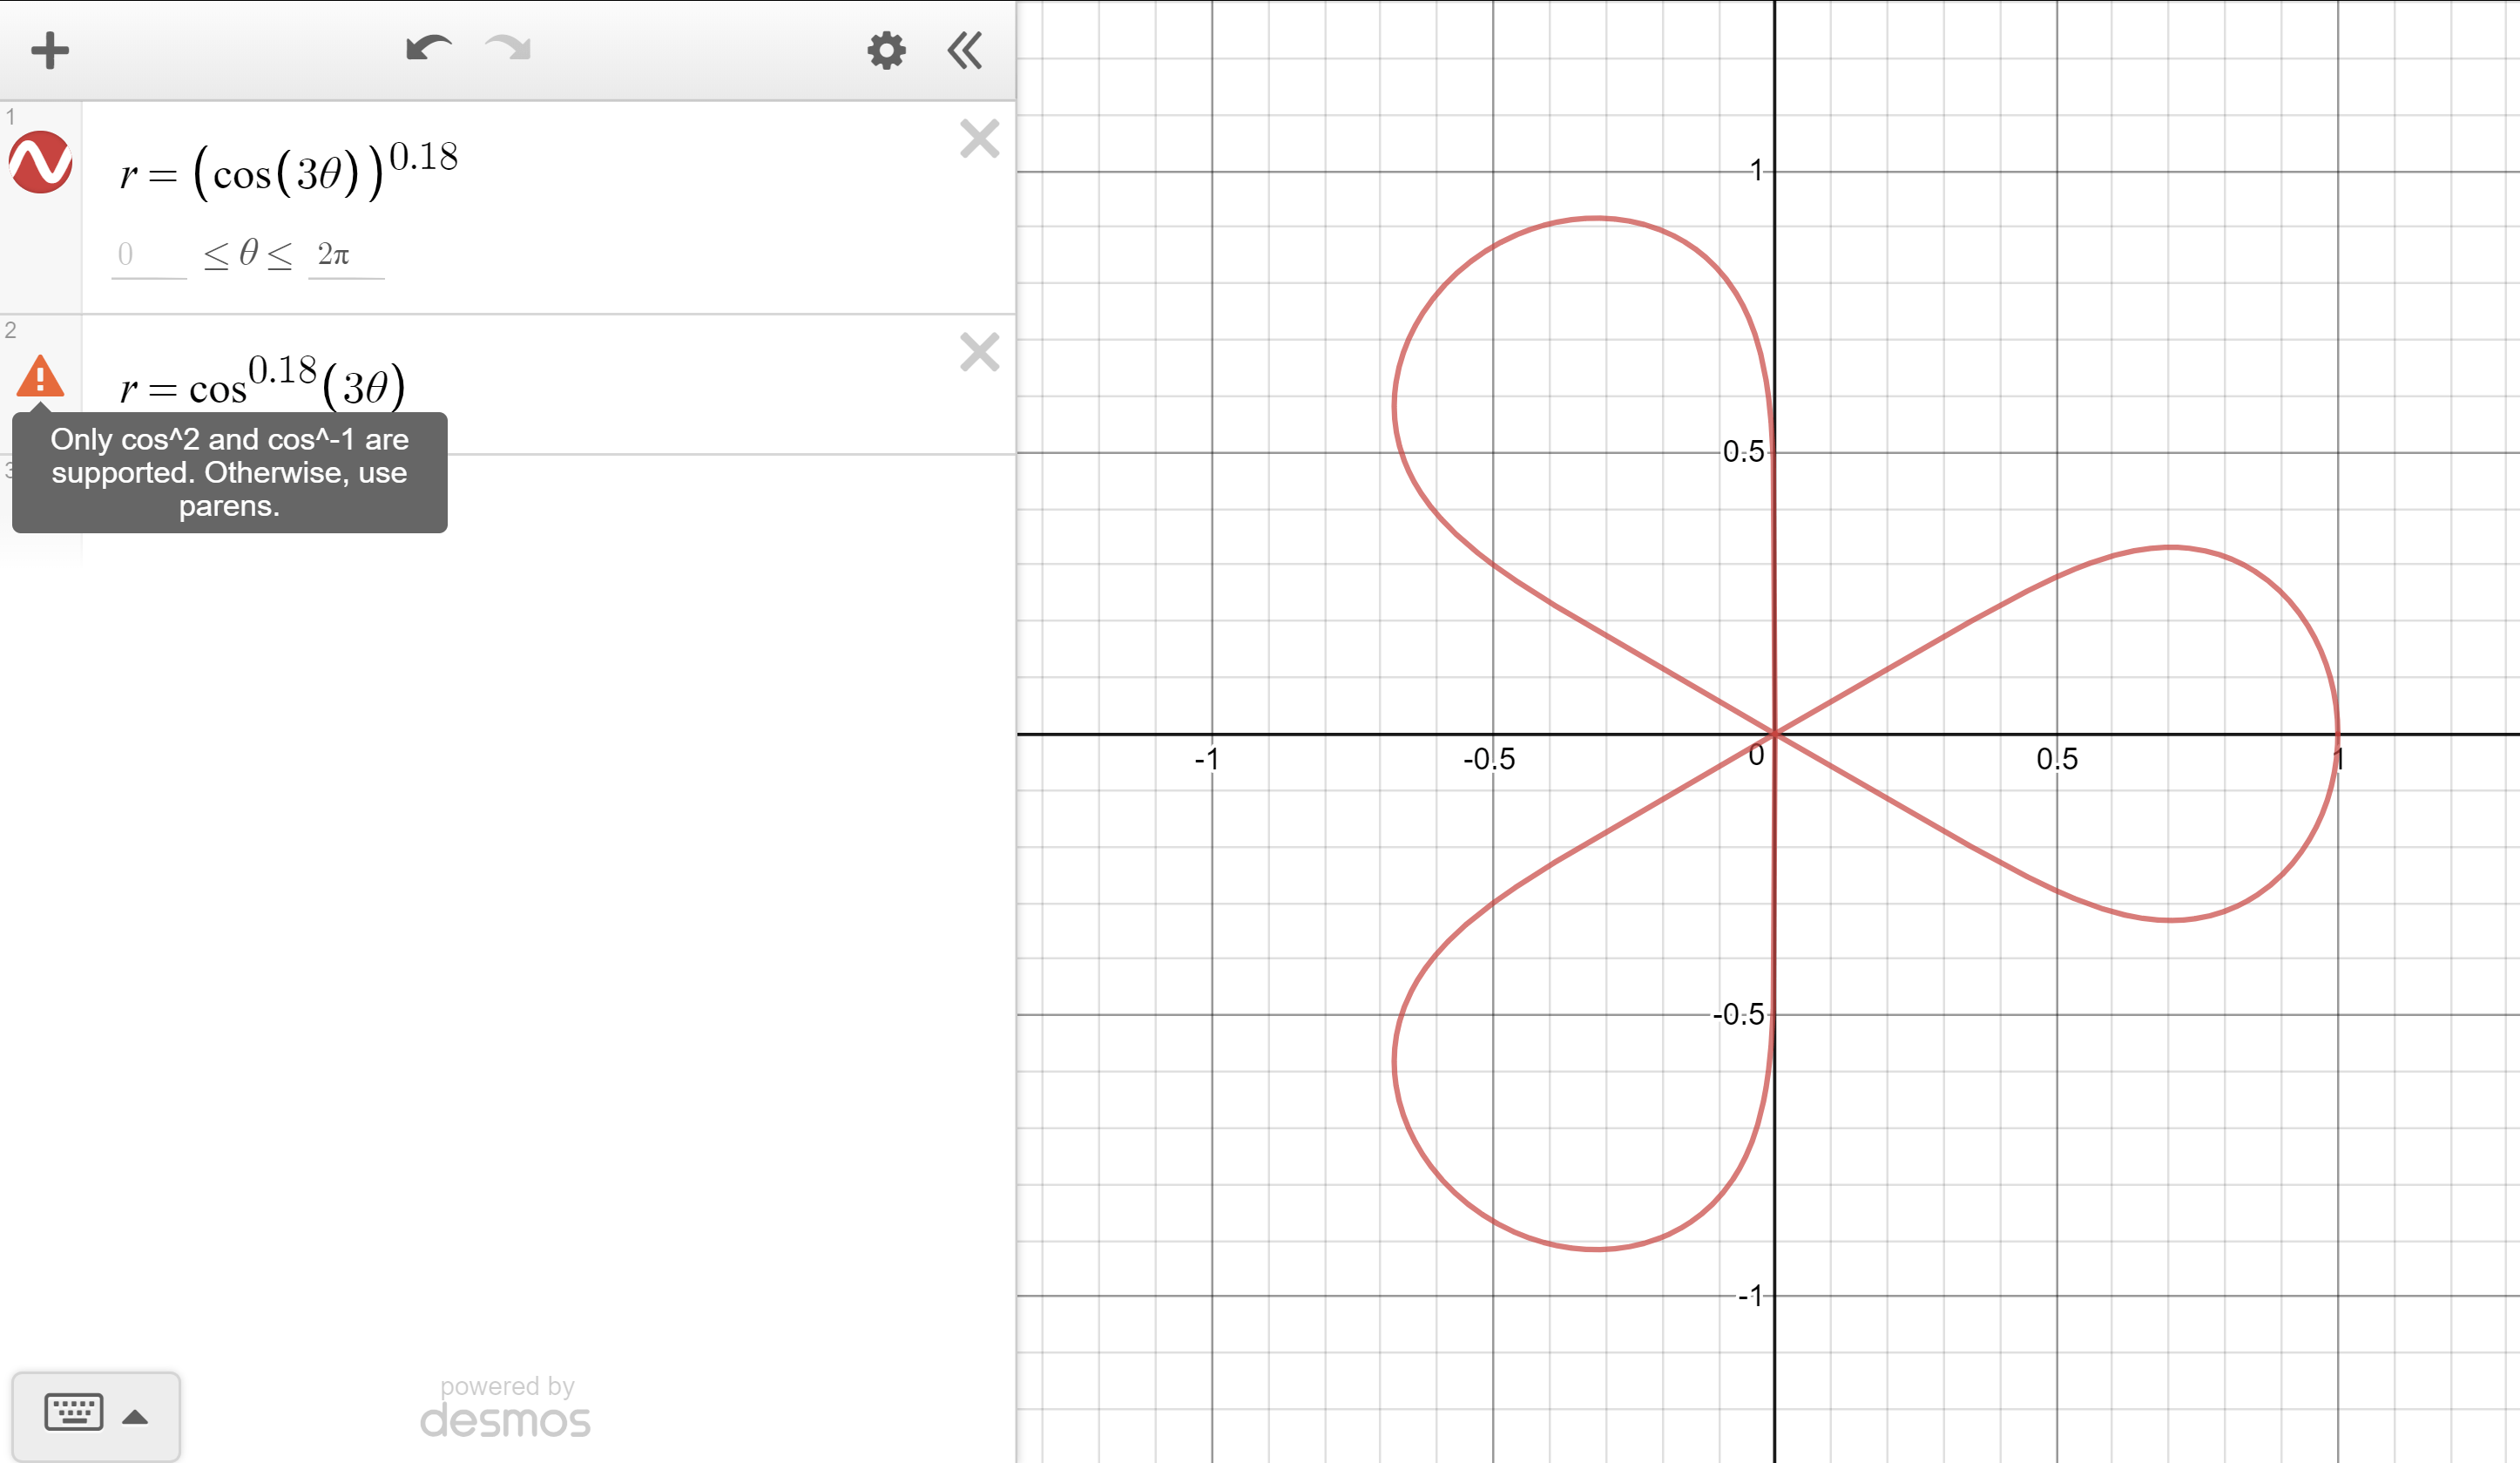 Why can't I get online graphing software to plot $r=\cos